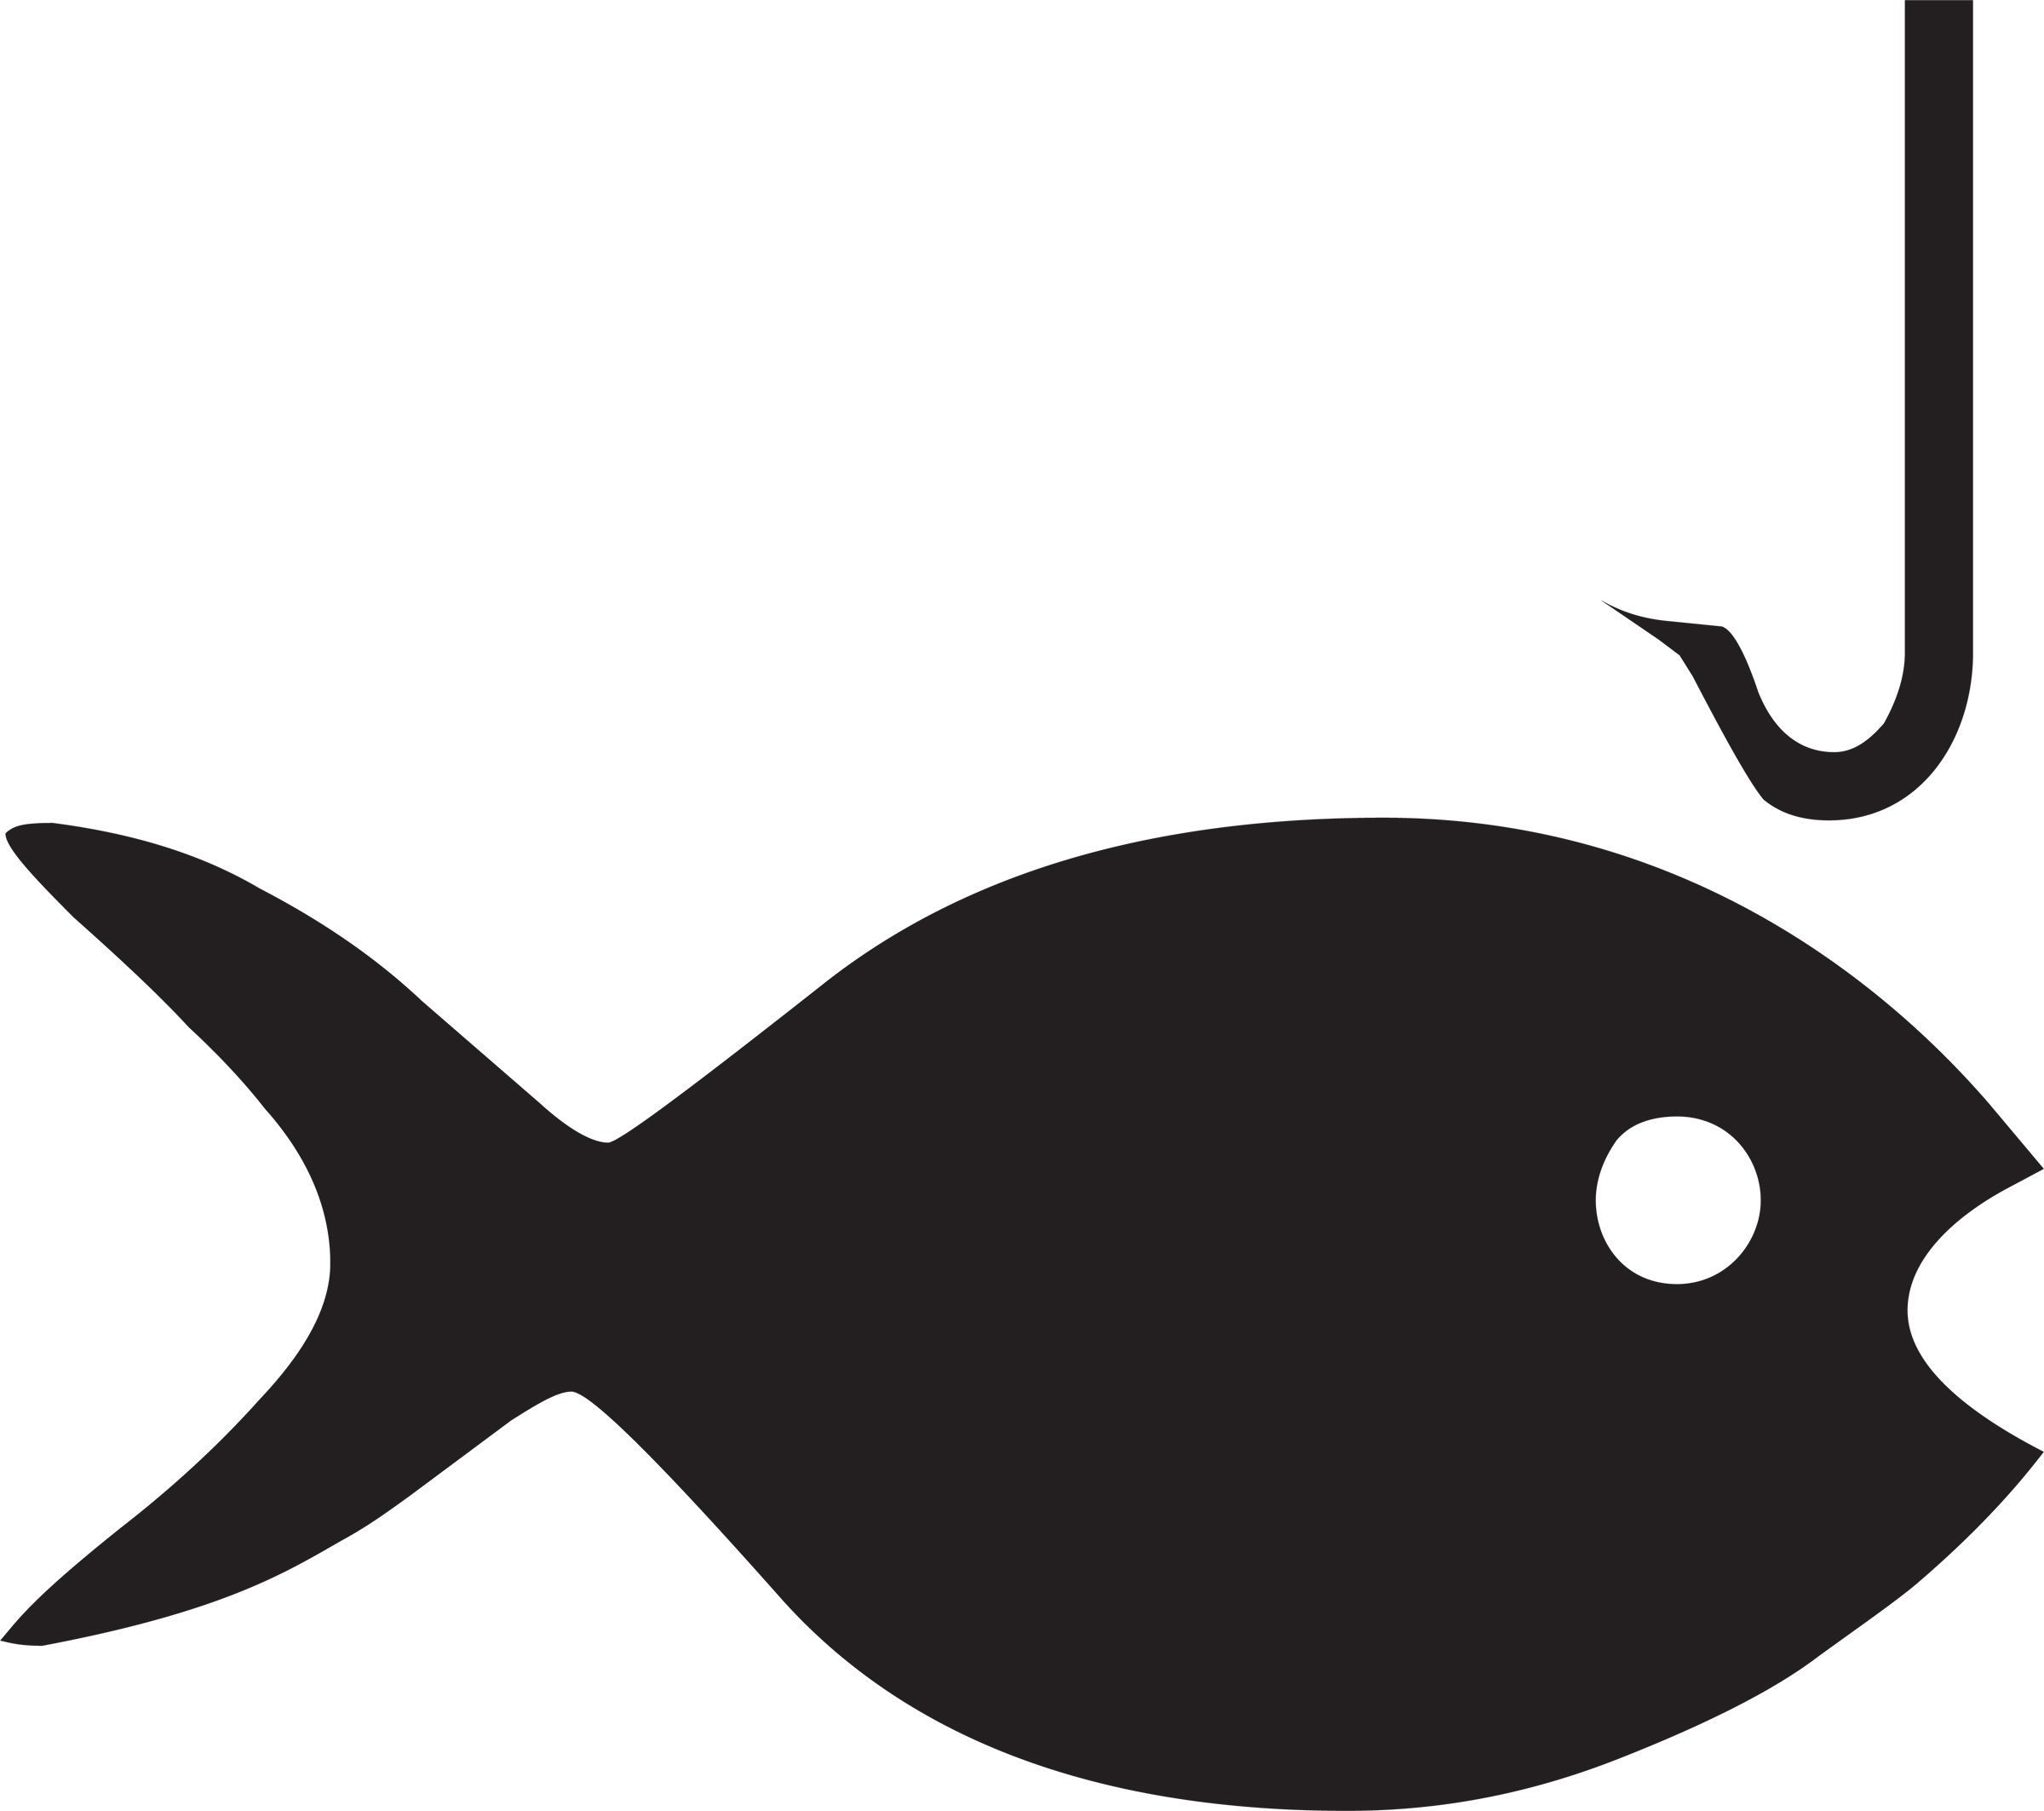 Fish on a hook clipart 8 » Clipart Portal.